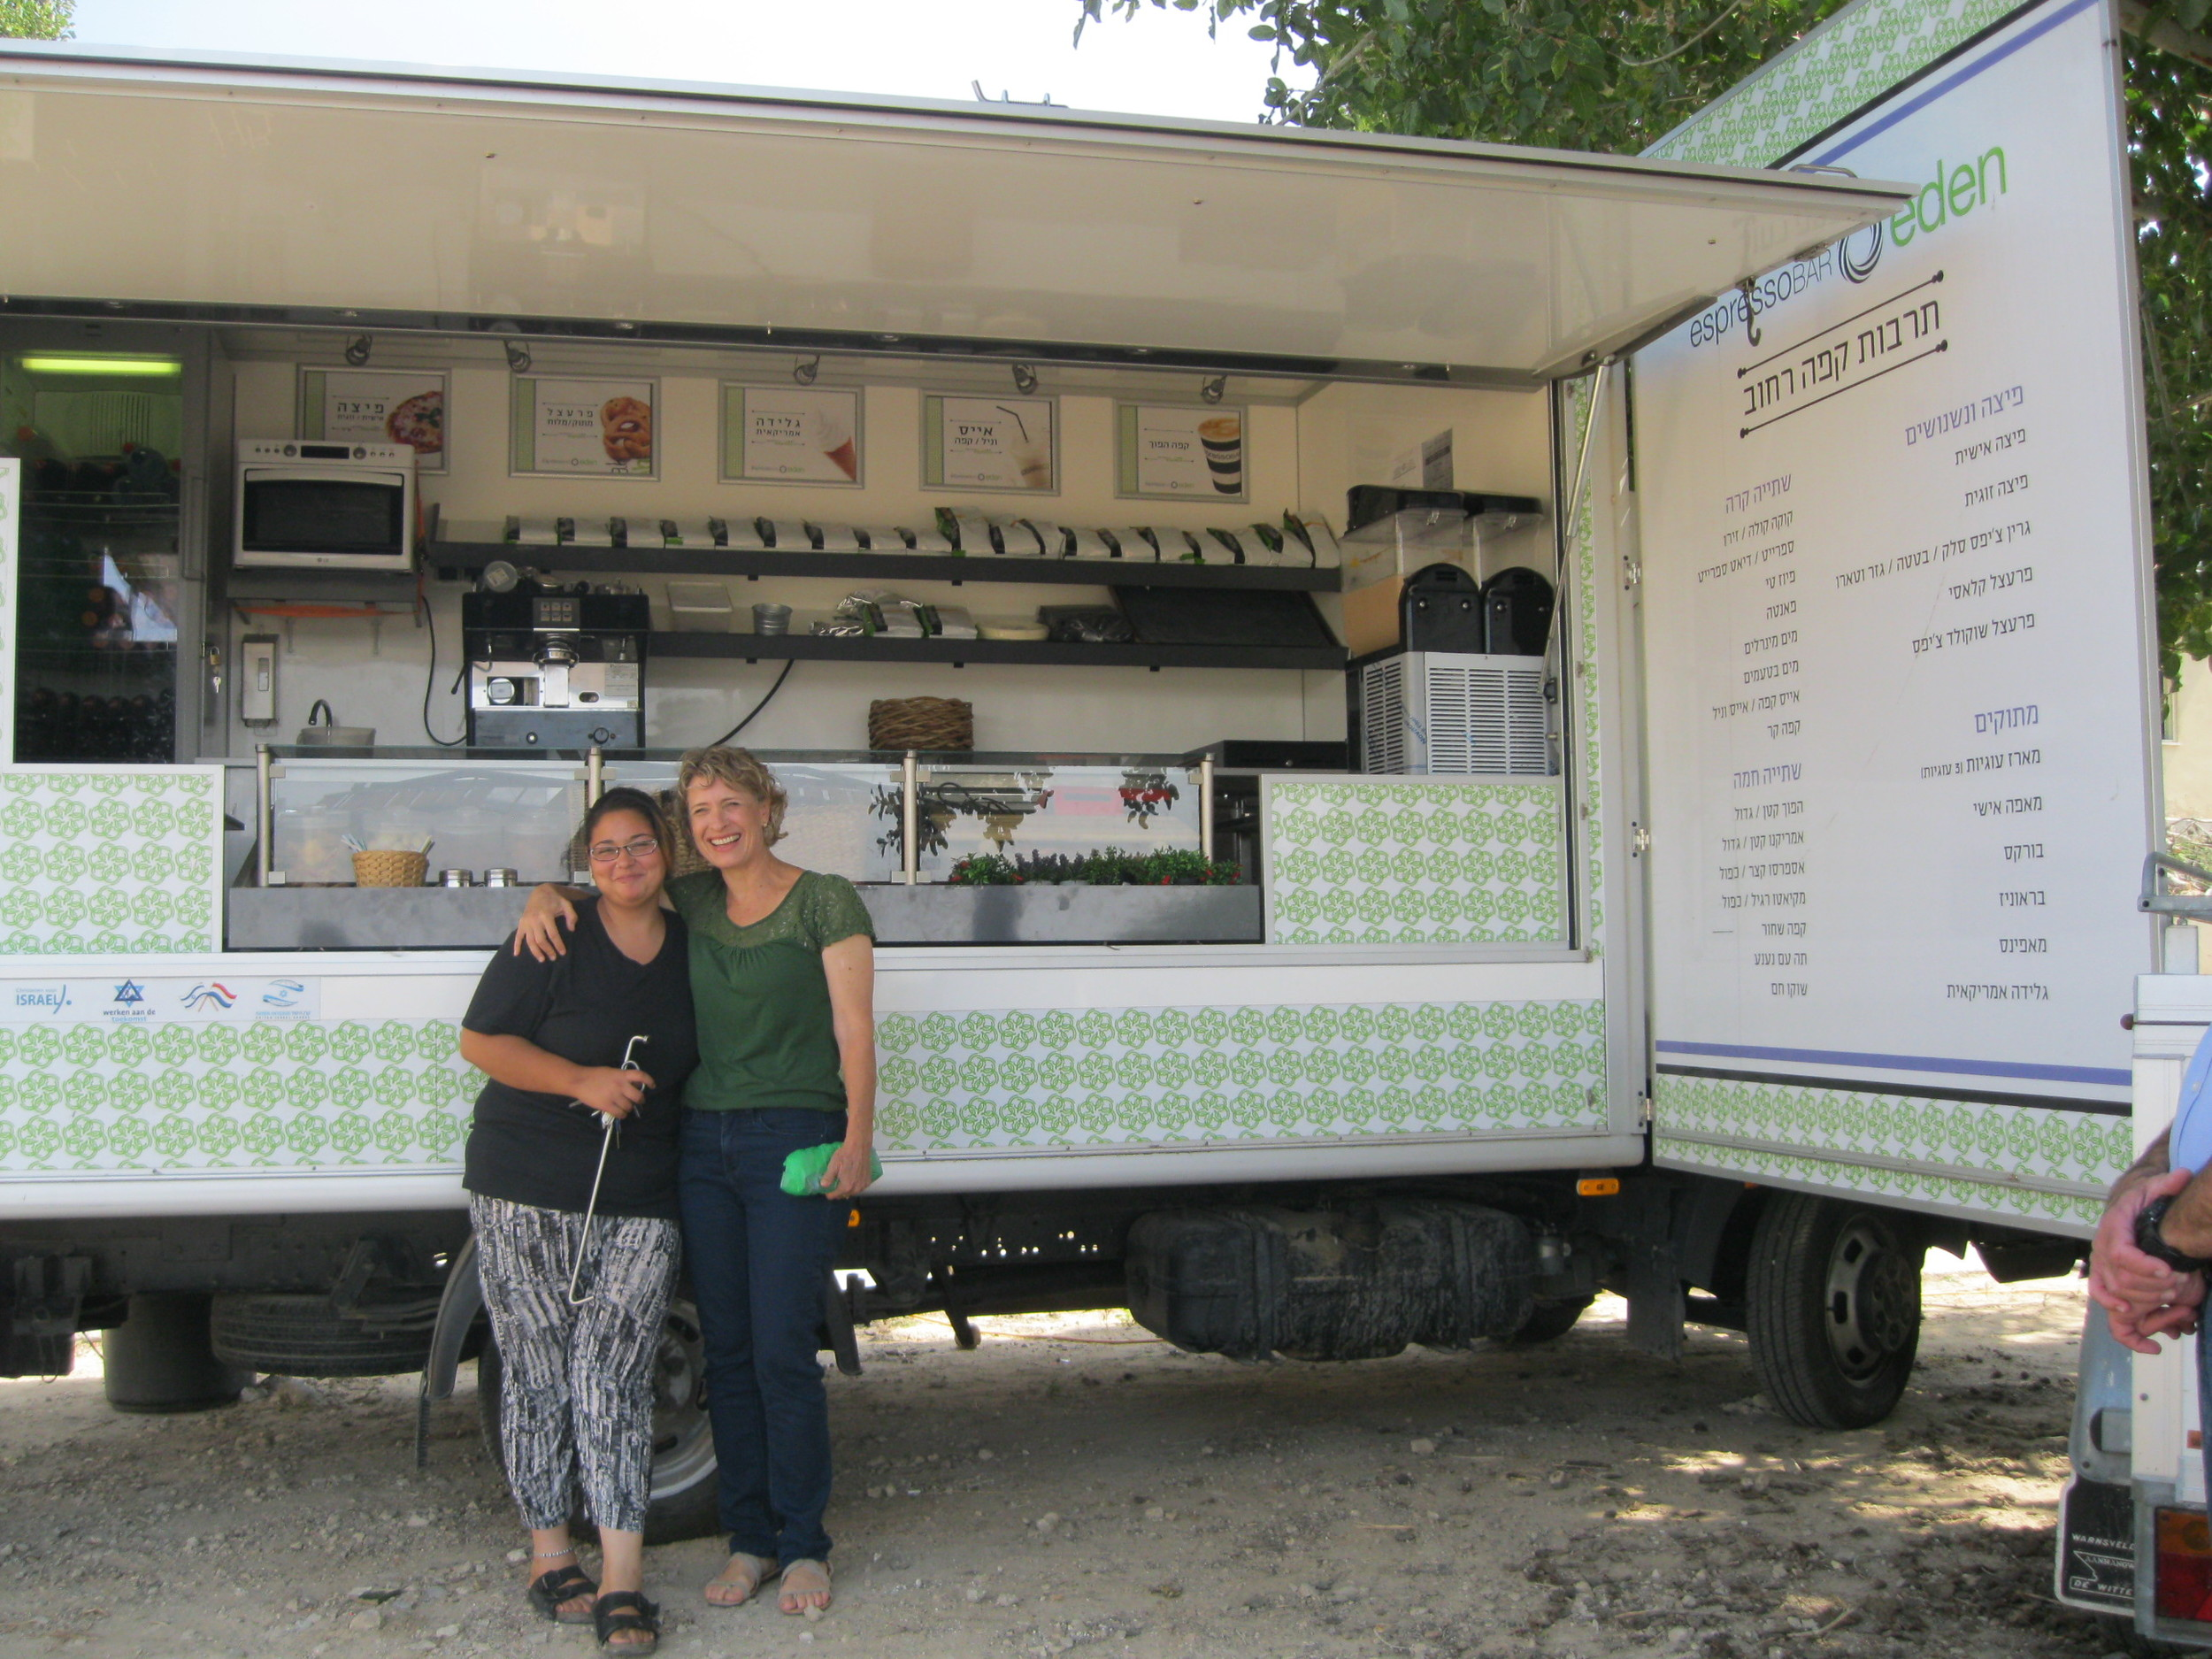 This food truck brings income to the shelter to support the girls